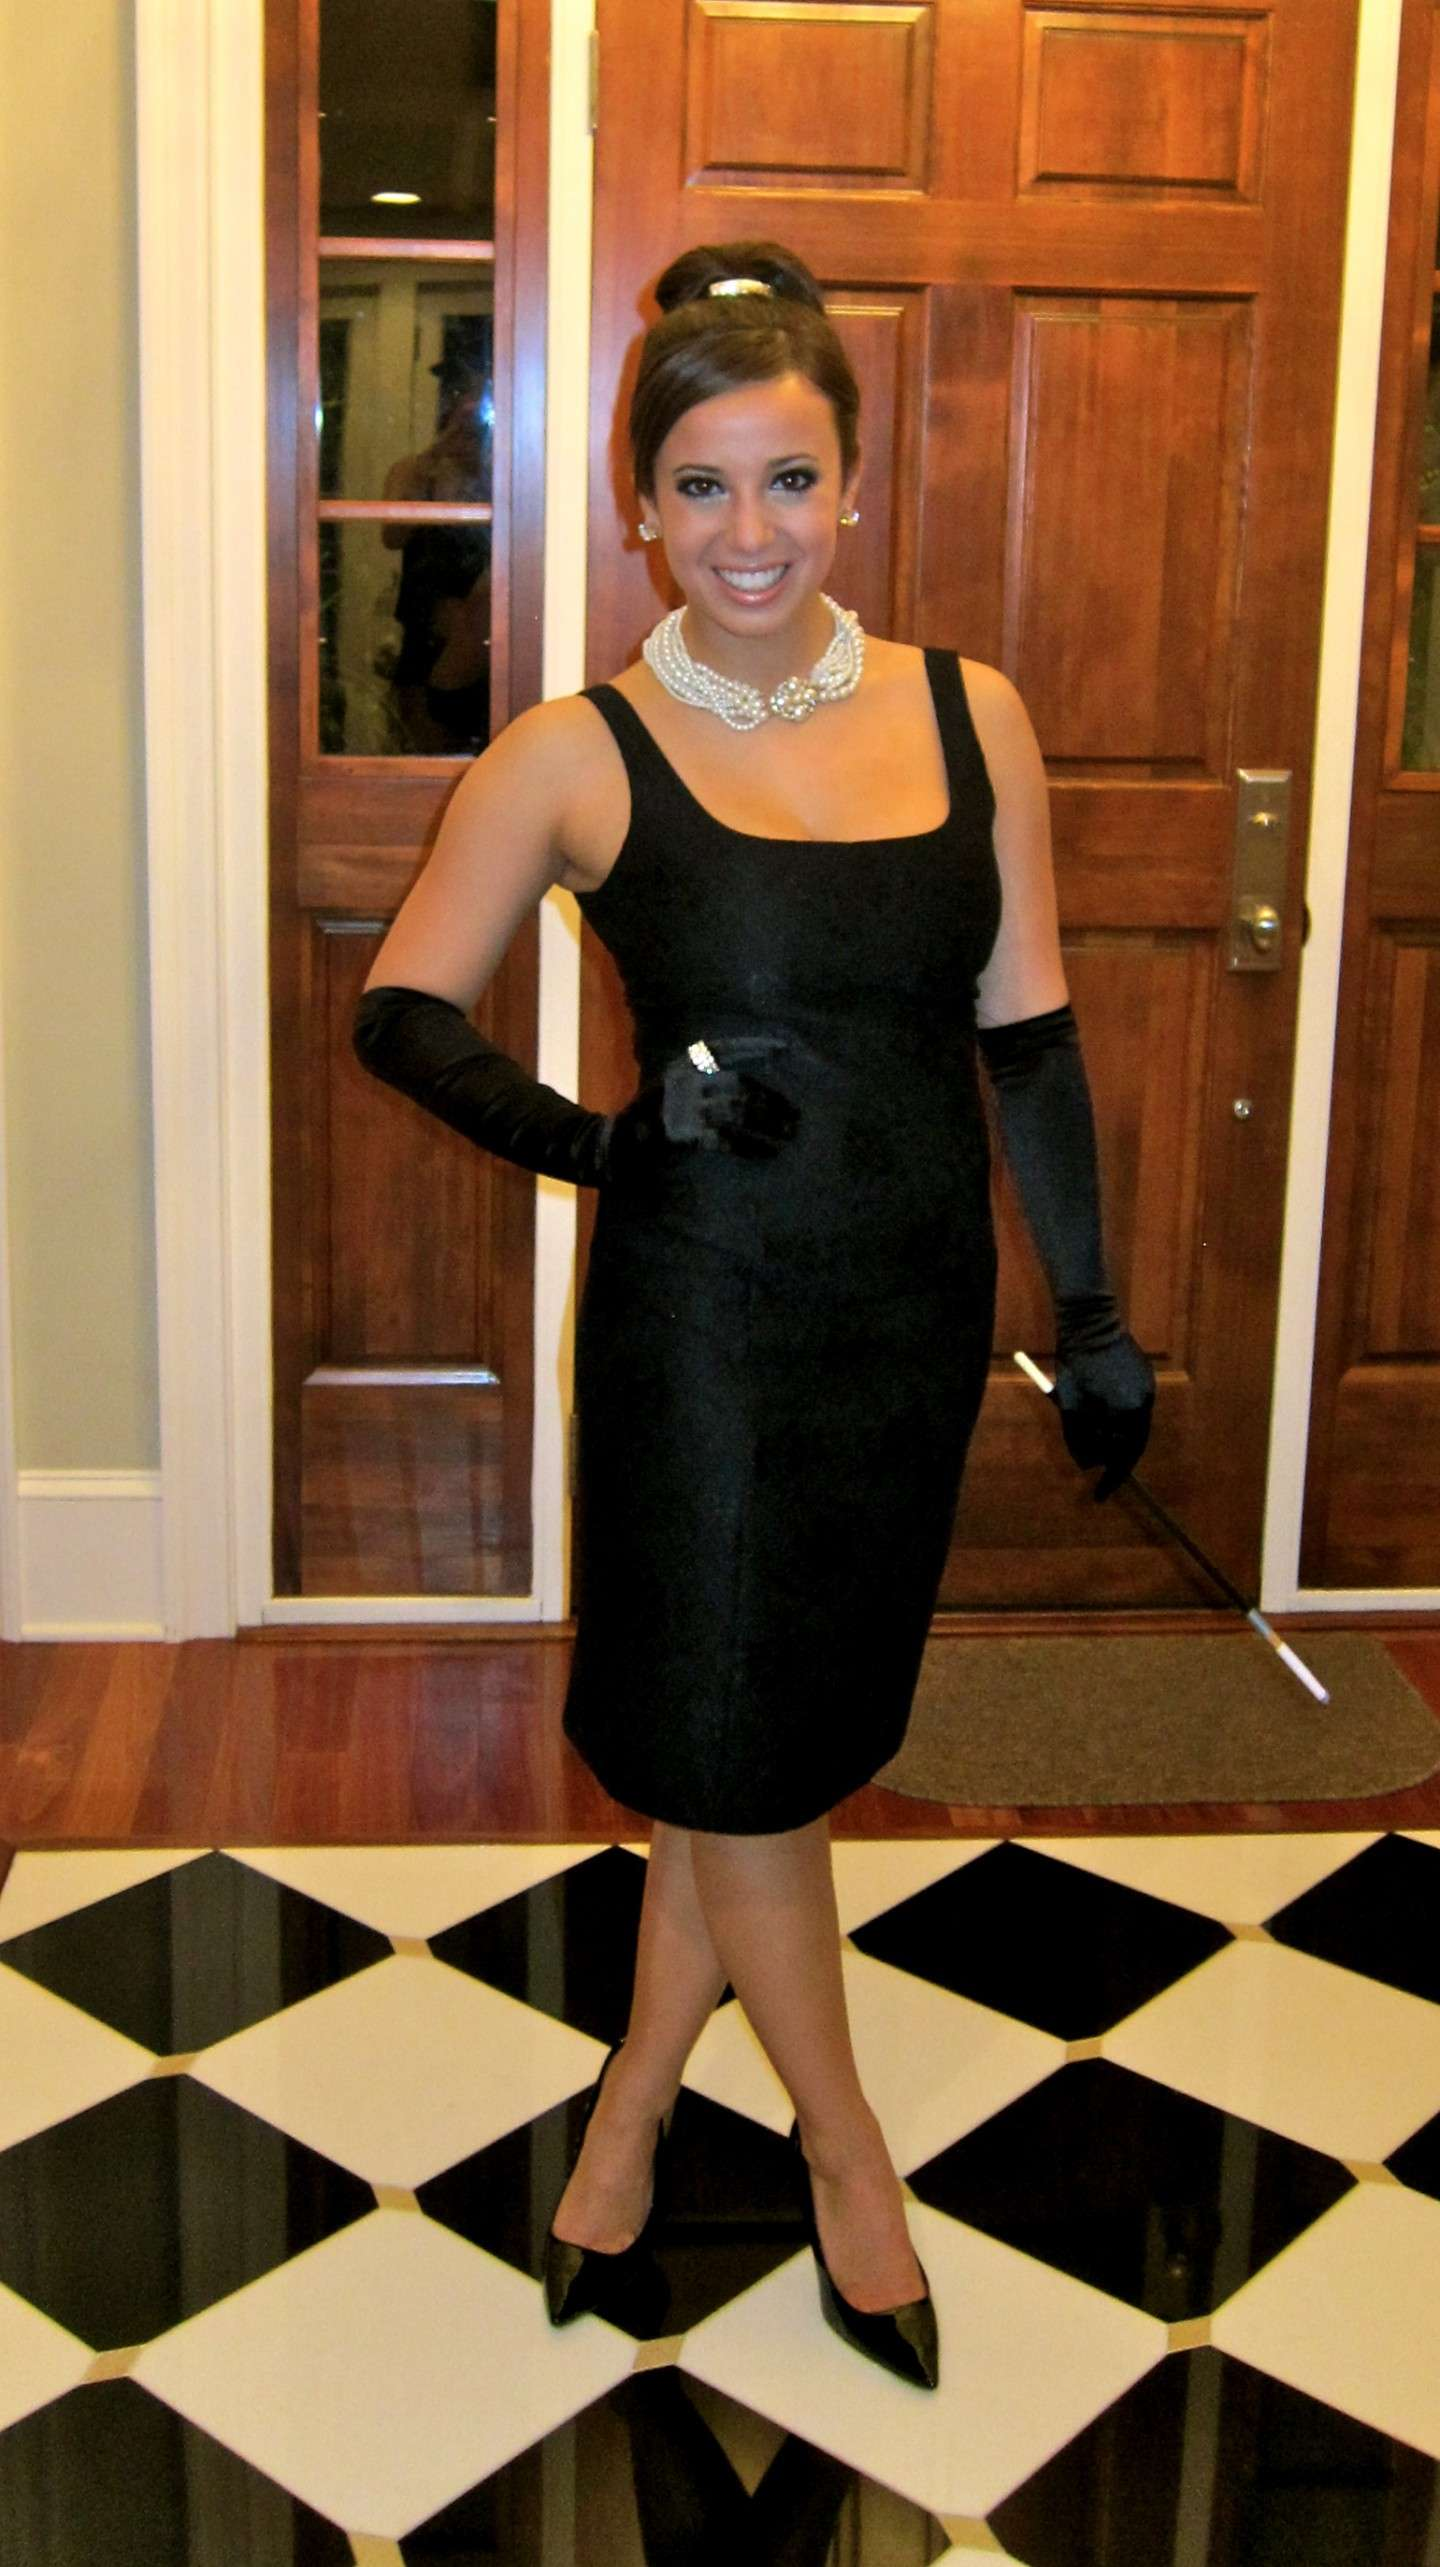 Costumi di Carnevale ispirati al cinema: Holly Golightly